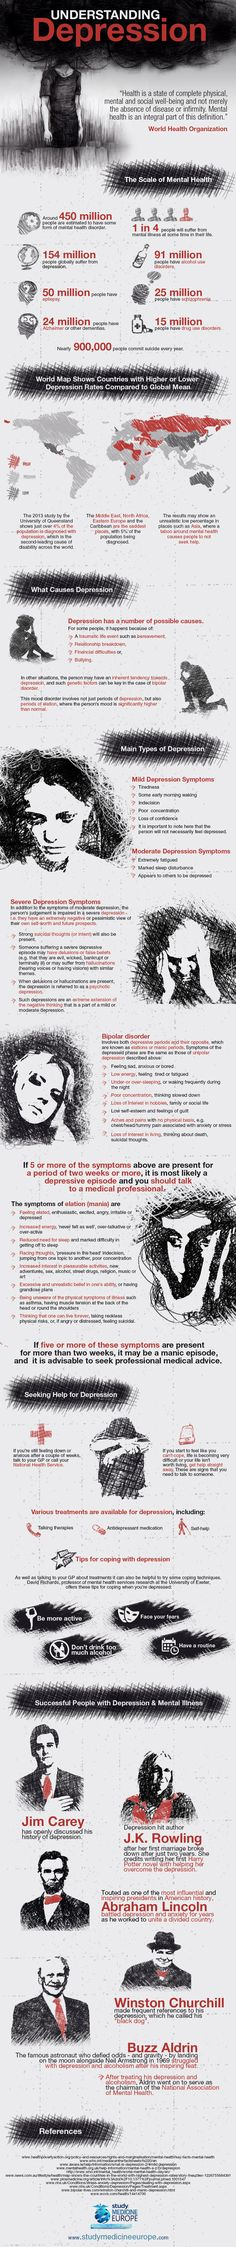 An Infographic to Help You Understand Depression - Whether induced by outside factors or an inherent tendency towards depression or bipolar disorder, seek help if symptoms are present for two or more weeks. (View only) Depression and Bipolar Support Allia Mental Health Issues, Mental Health Awareness, Stress Management, Dealing With Depression, Depression Hurts, Managing Depression, Beating Depression, Fighting Depression, Mental Health